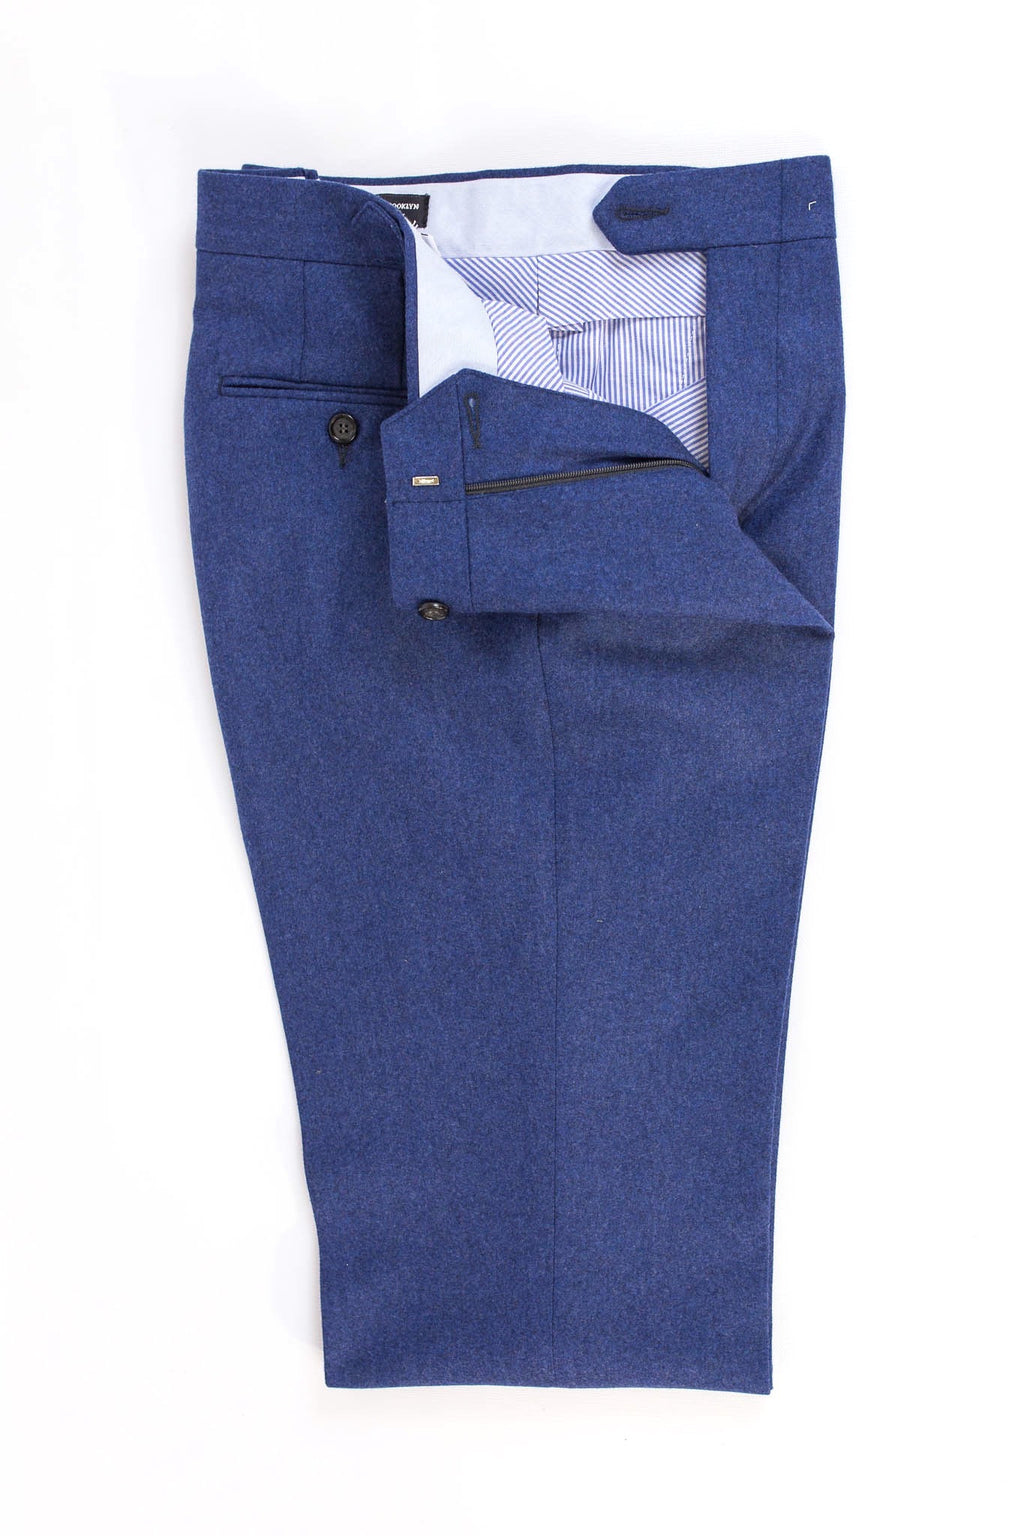 READ WALL Trouser - Indigo Flannel